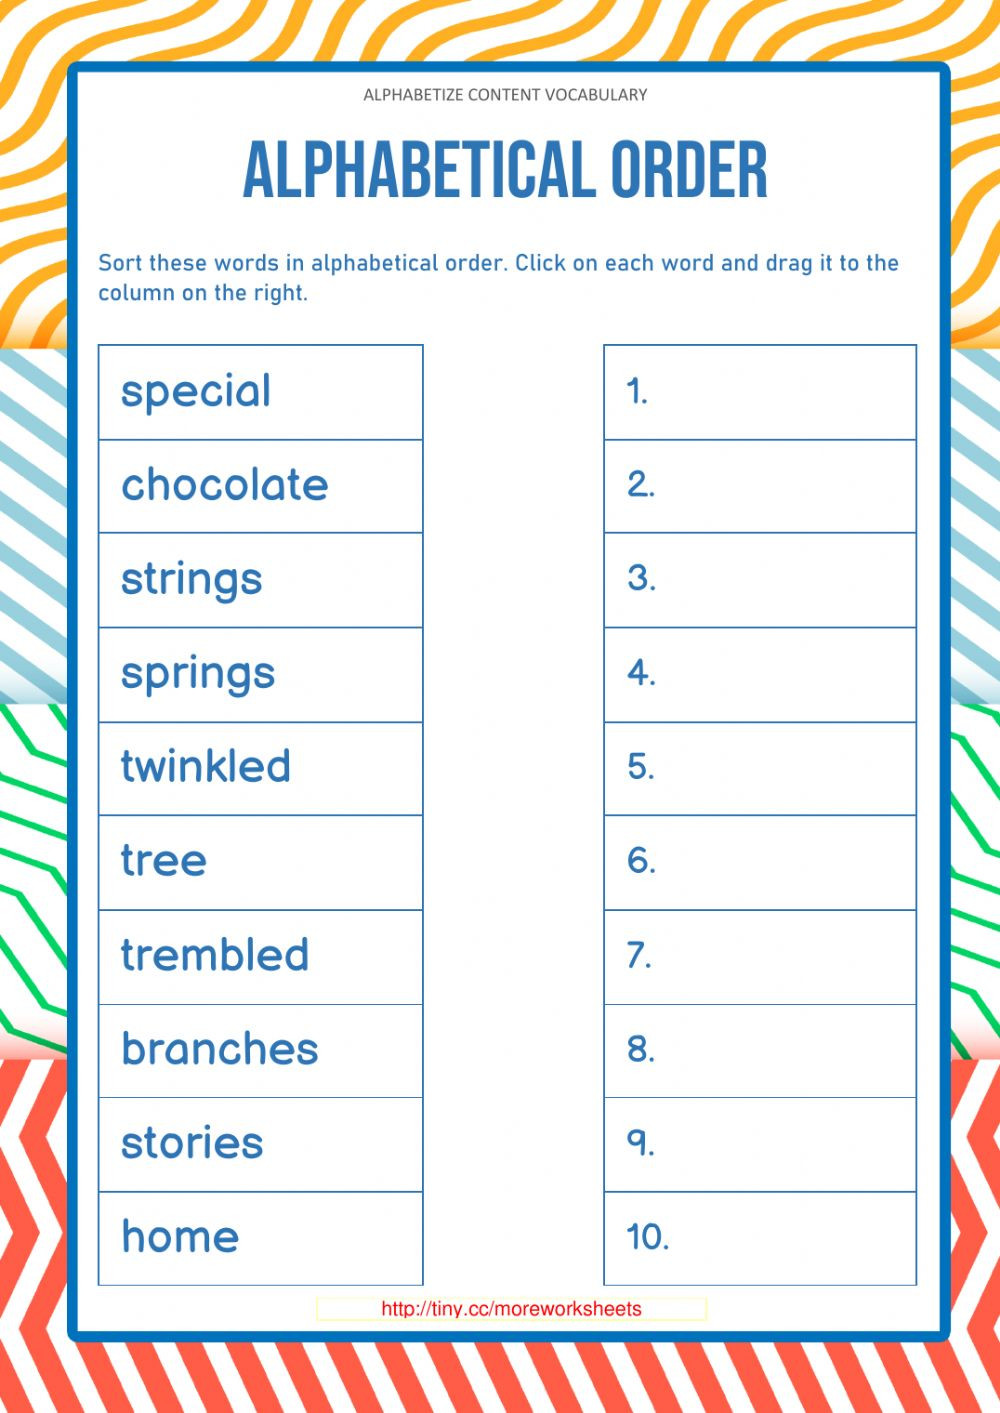 Alphabetizing Worksheets for Grade 1 Alphabetize Content Vocabulary 1 Worksheet